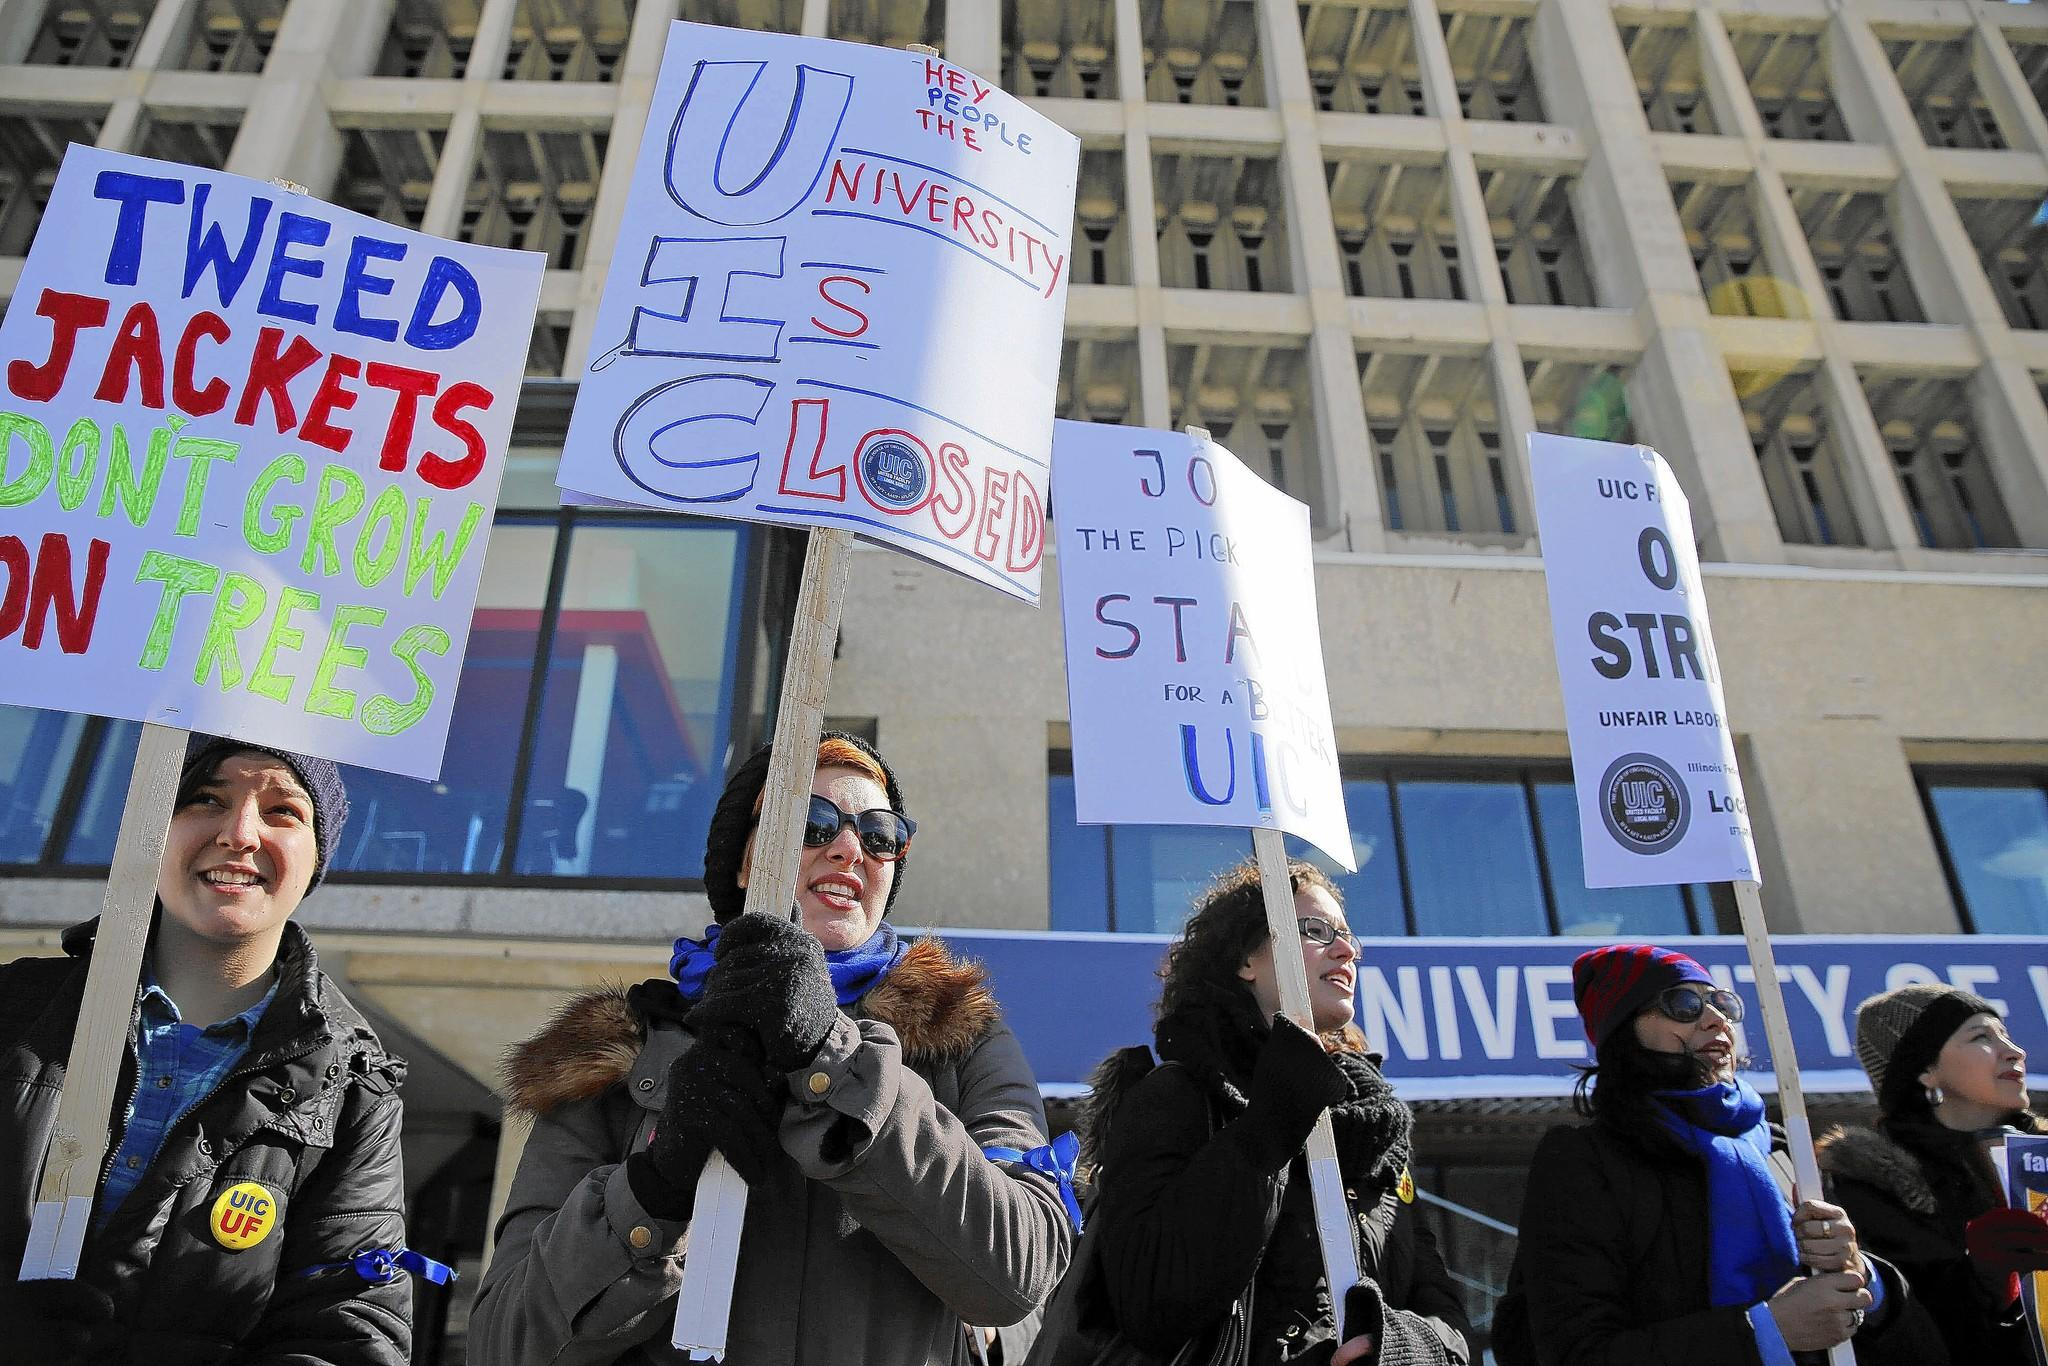 Faculty members and supporters march at the University of Illinois at Chicago on Wednesday. The two-day walkout, which canceled many classes, was aimed at focusing attention on the lack of contract, and salaries and benefits.